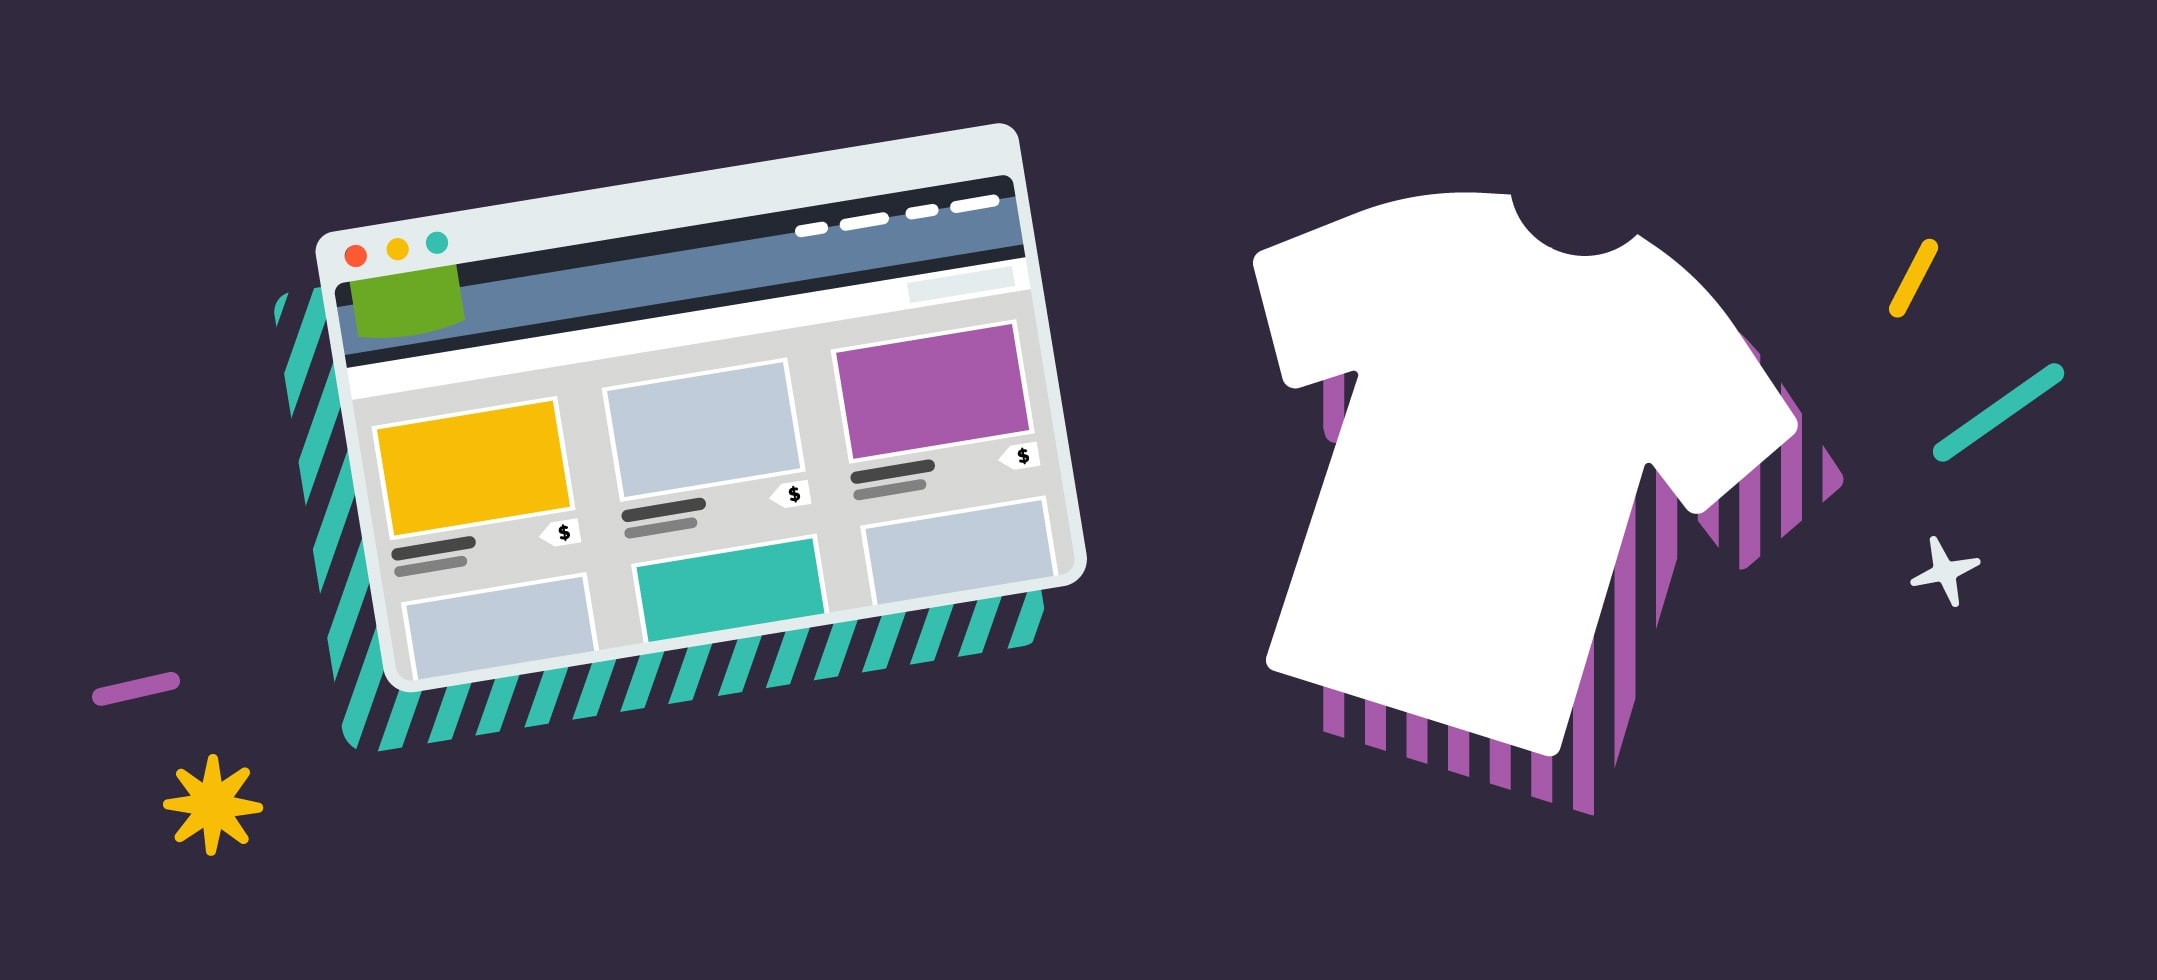 How to Make Your Own T-Shirt Designs Using Creative Market